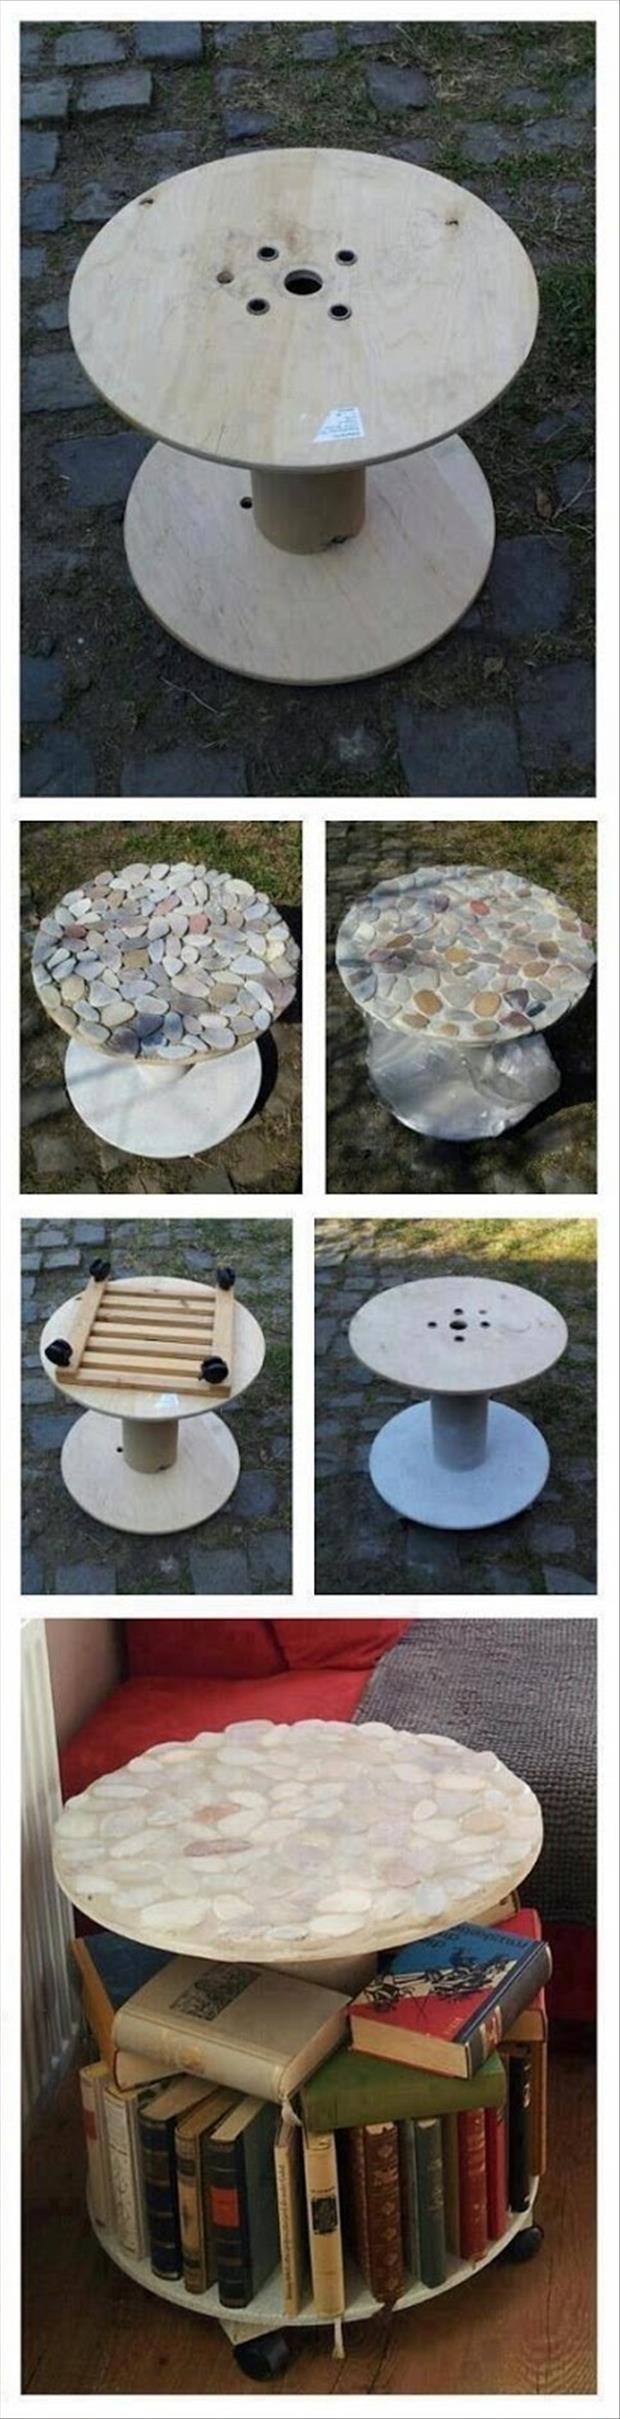 do-it-yourself-crafts-41